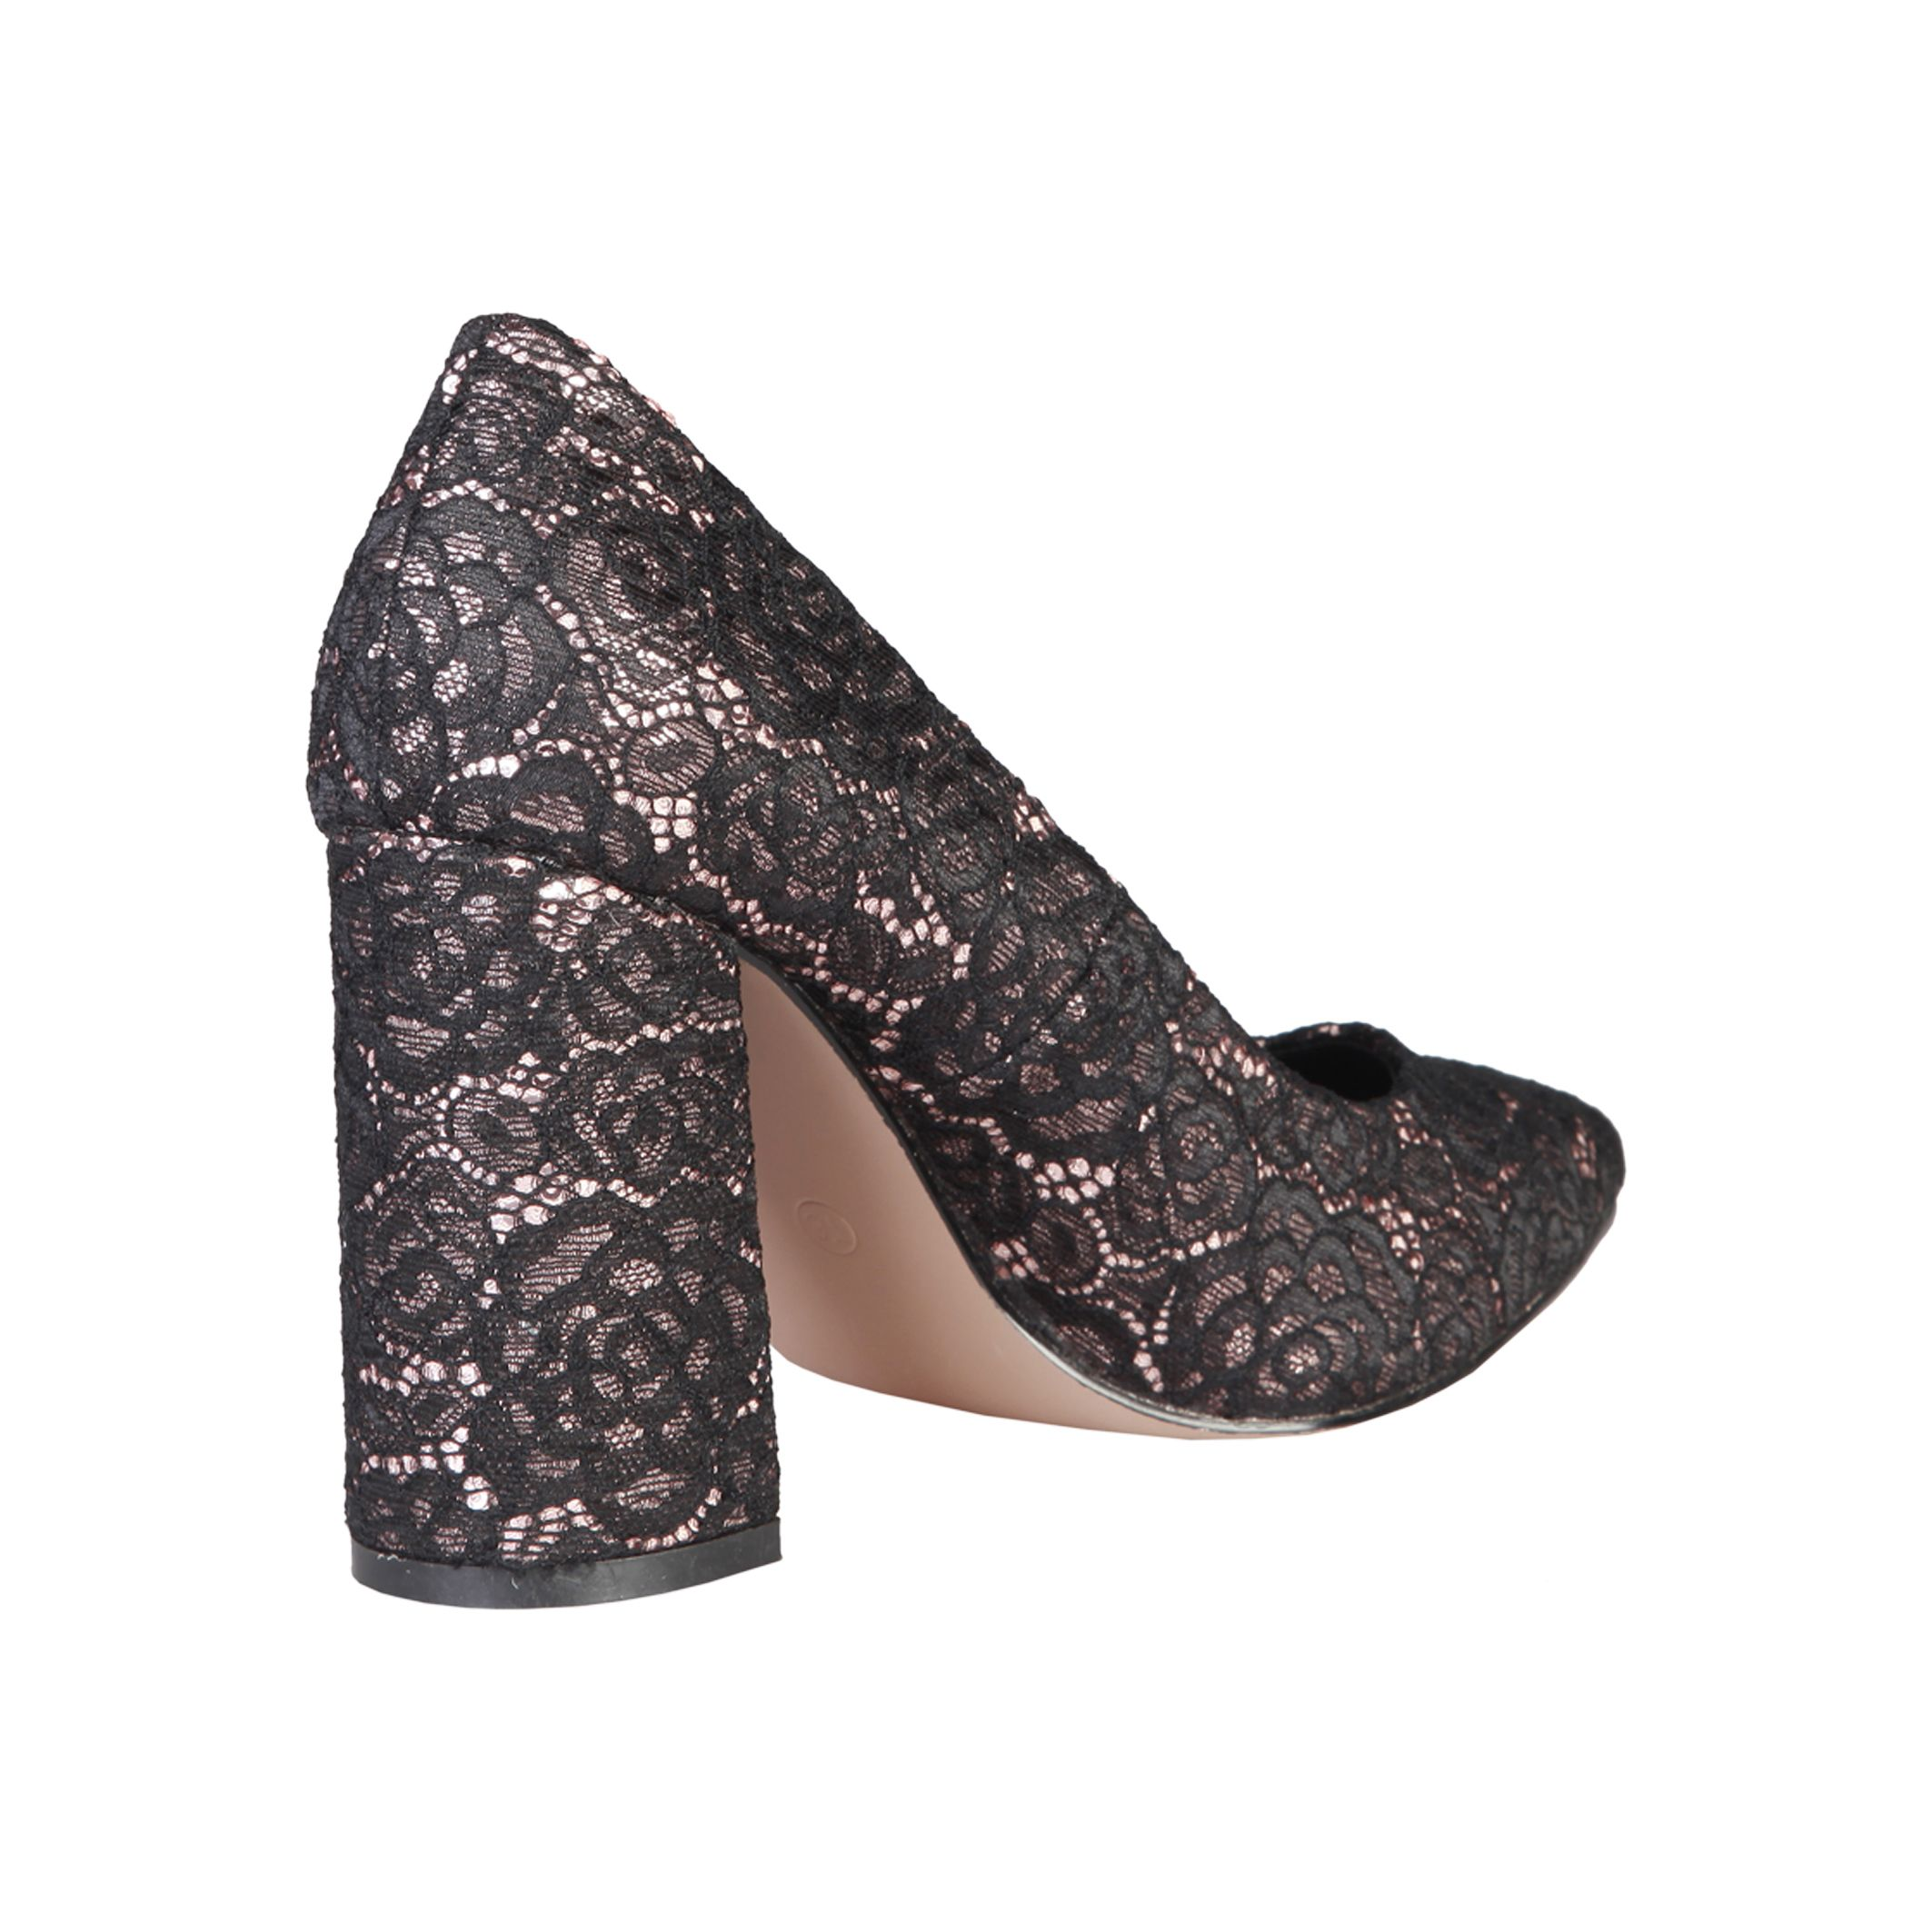 Fontana 2.0 Womens Pumps & Heels